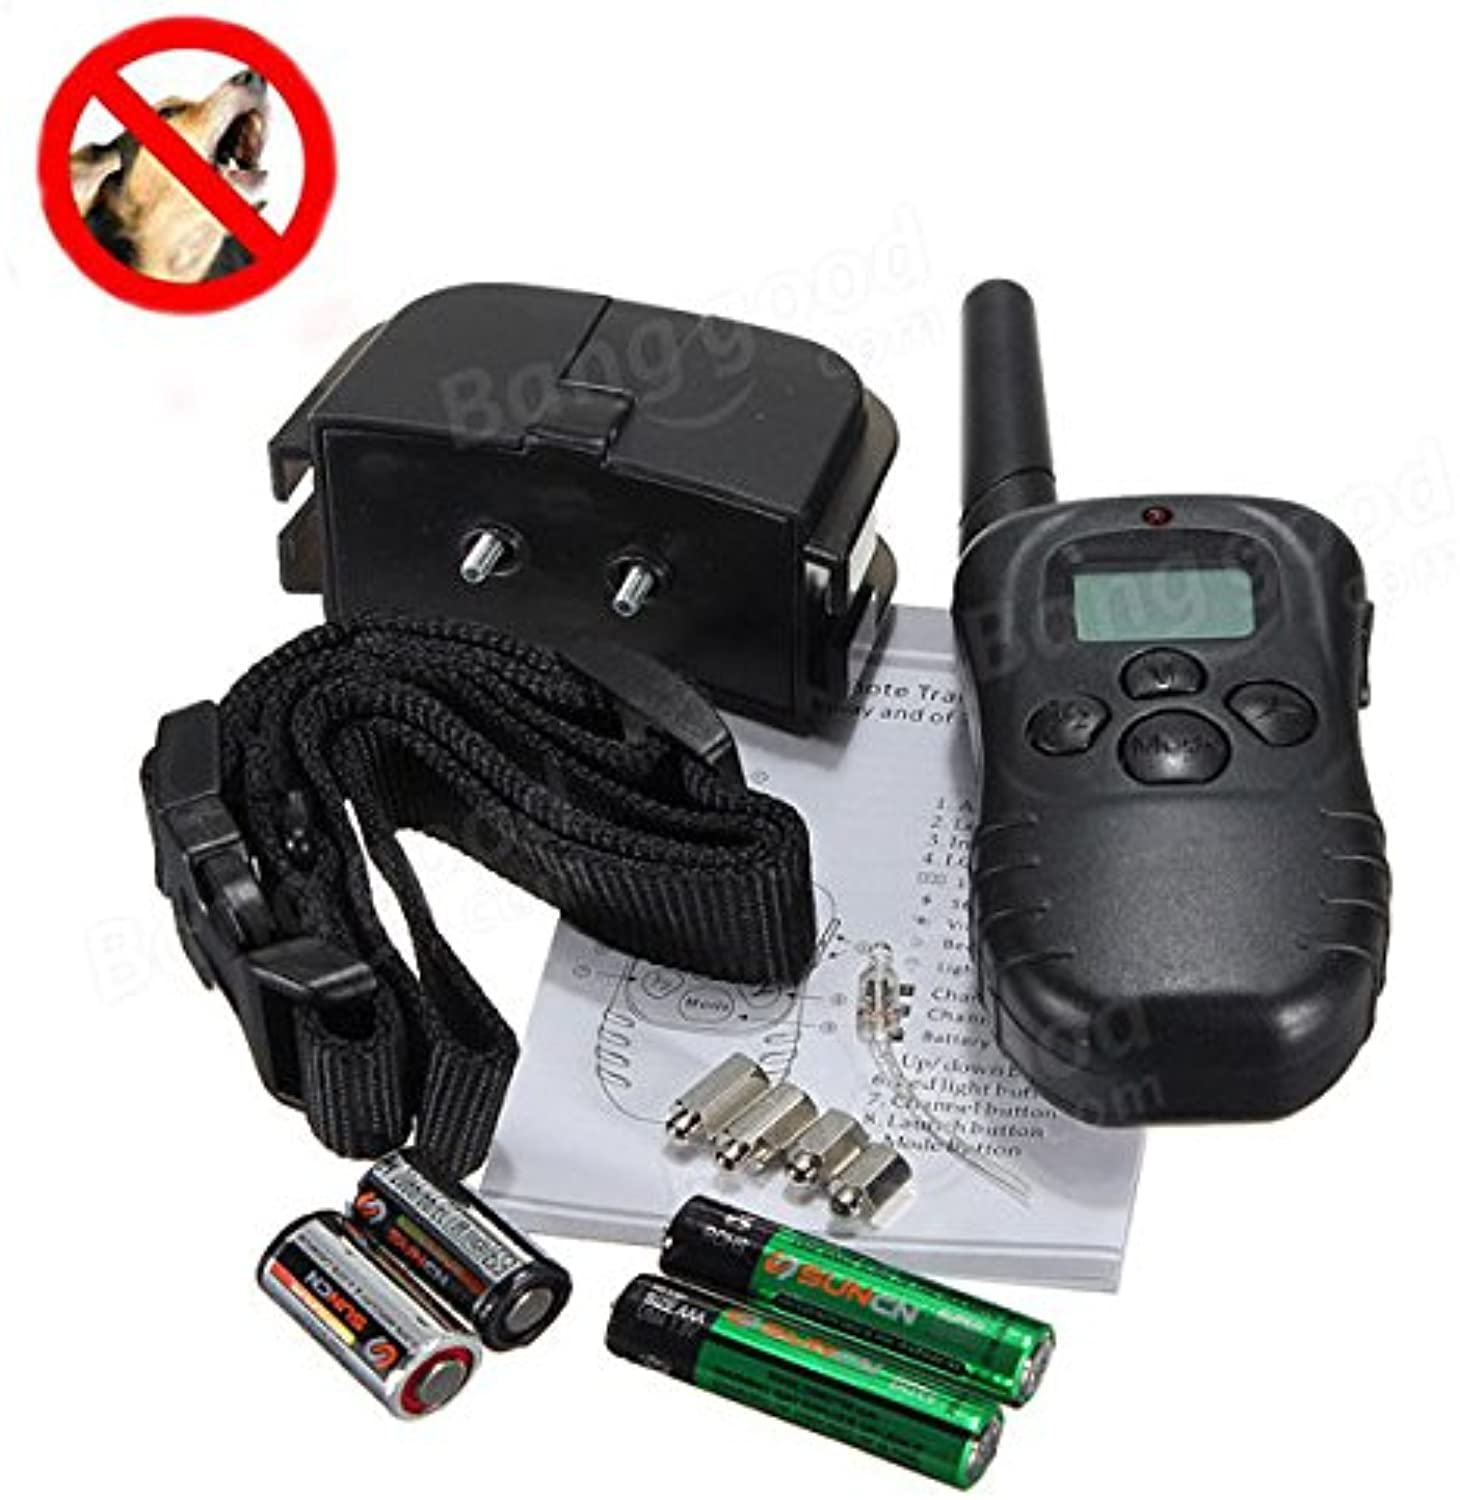 Hiquty LCD Display Remote Dog Training Stop Bark Collar 100 Levels